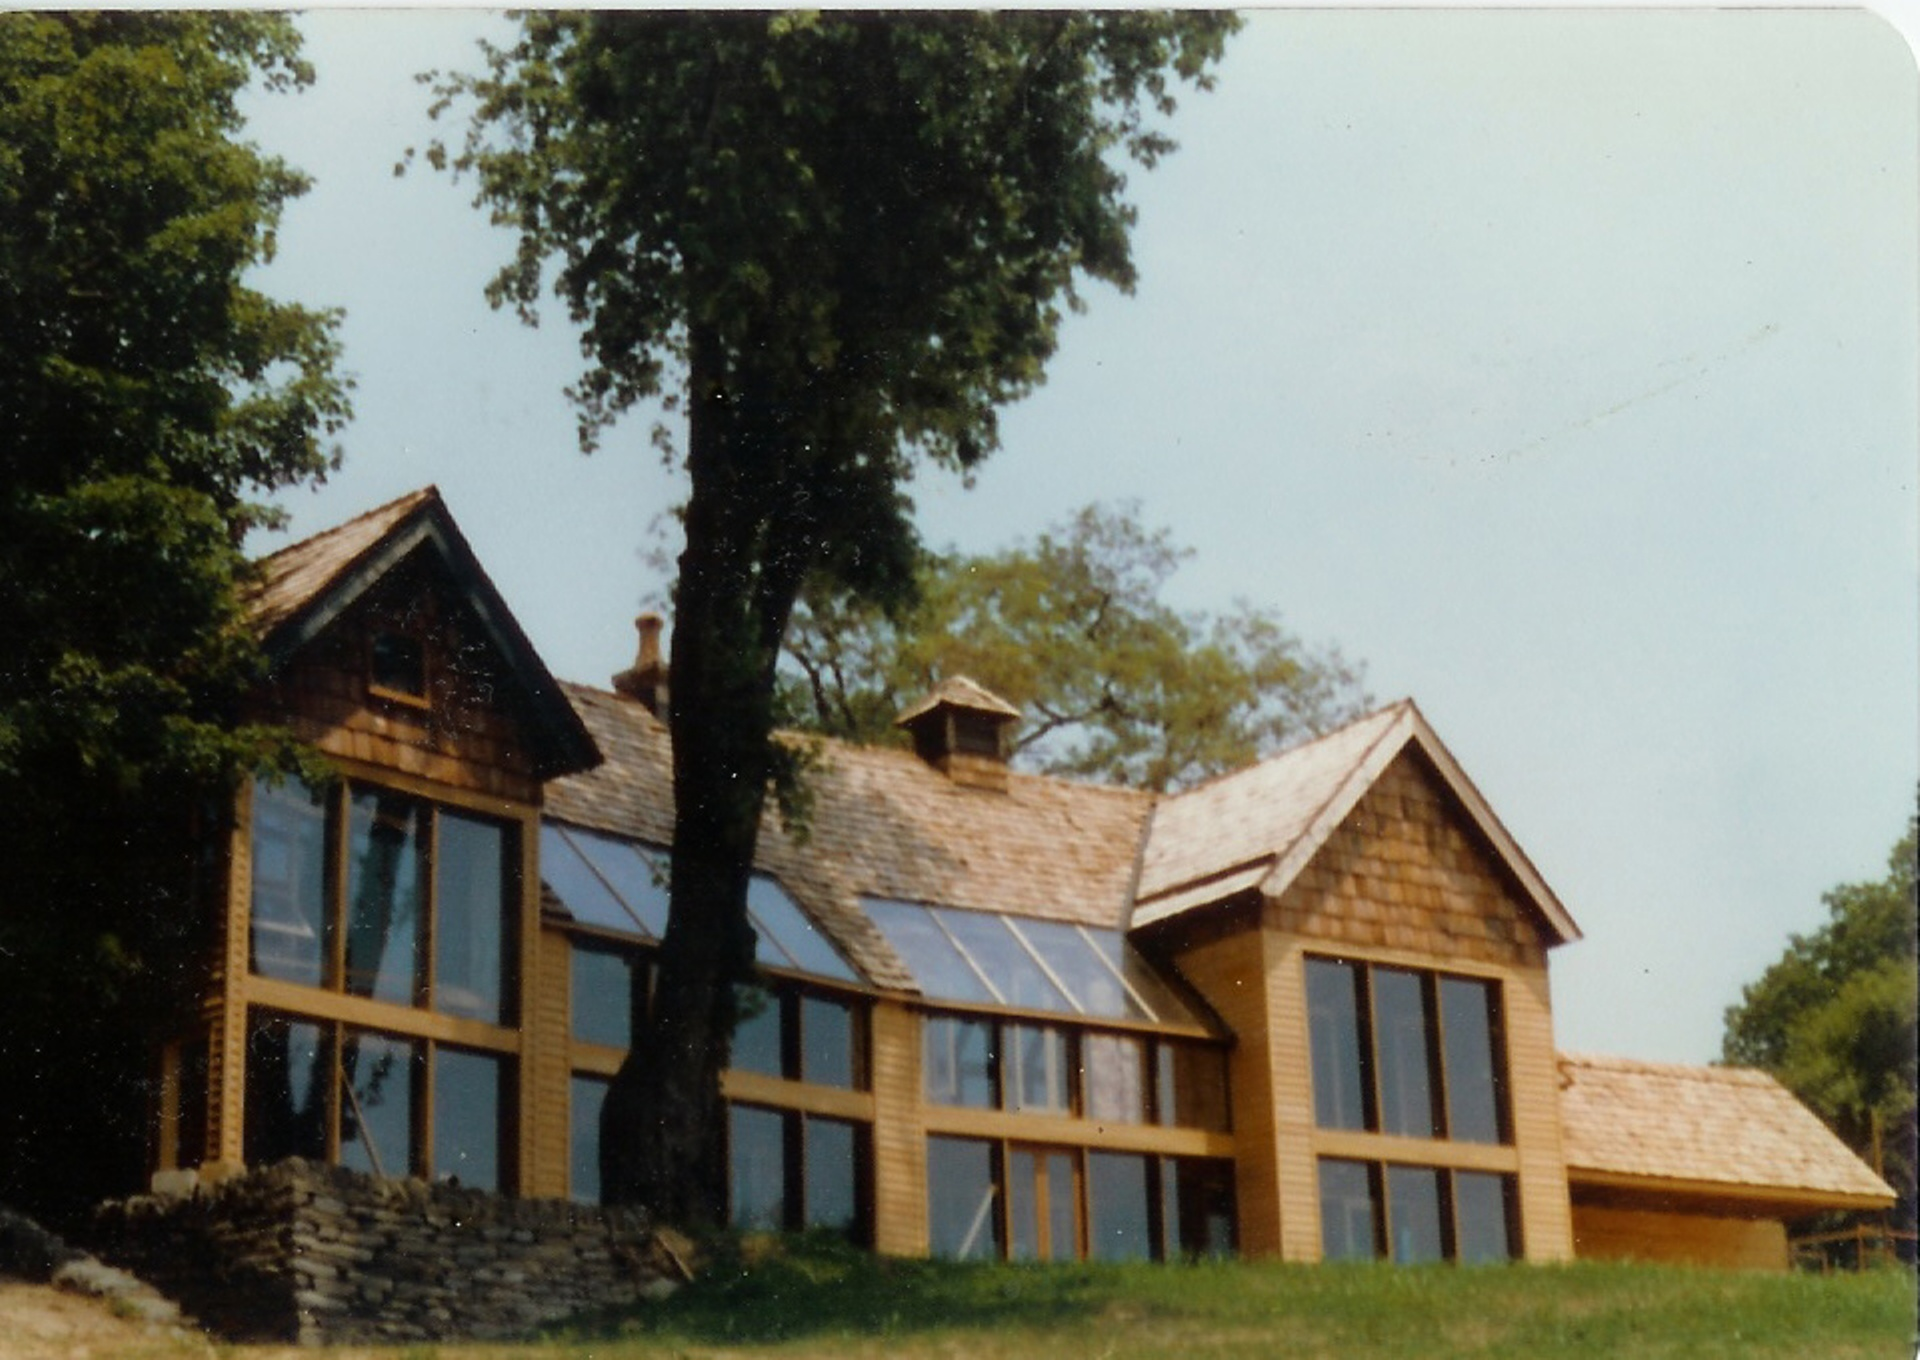 Built in 1979 this 3,600 square foot house had only a wood stove for back up. Behind the west half of the south glass wall is an old stone farm house. All this stone provided a large thermal flywheel that kept the house warm in winter and cool in summer.